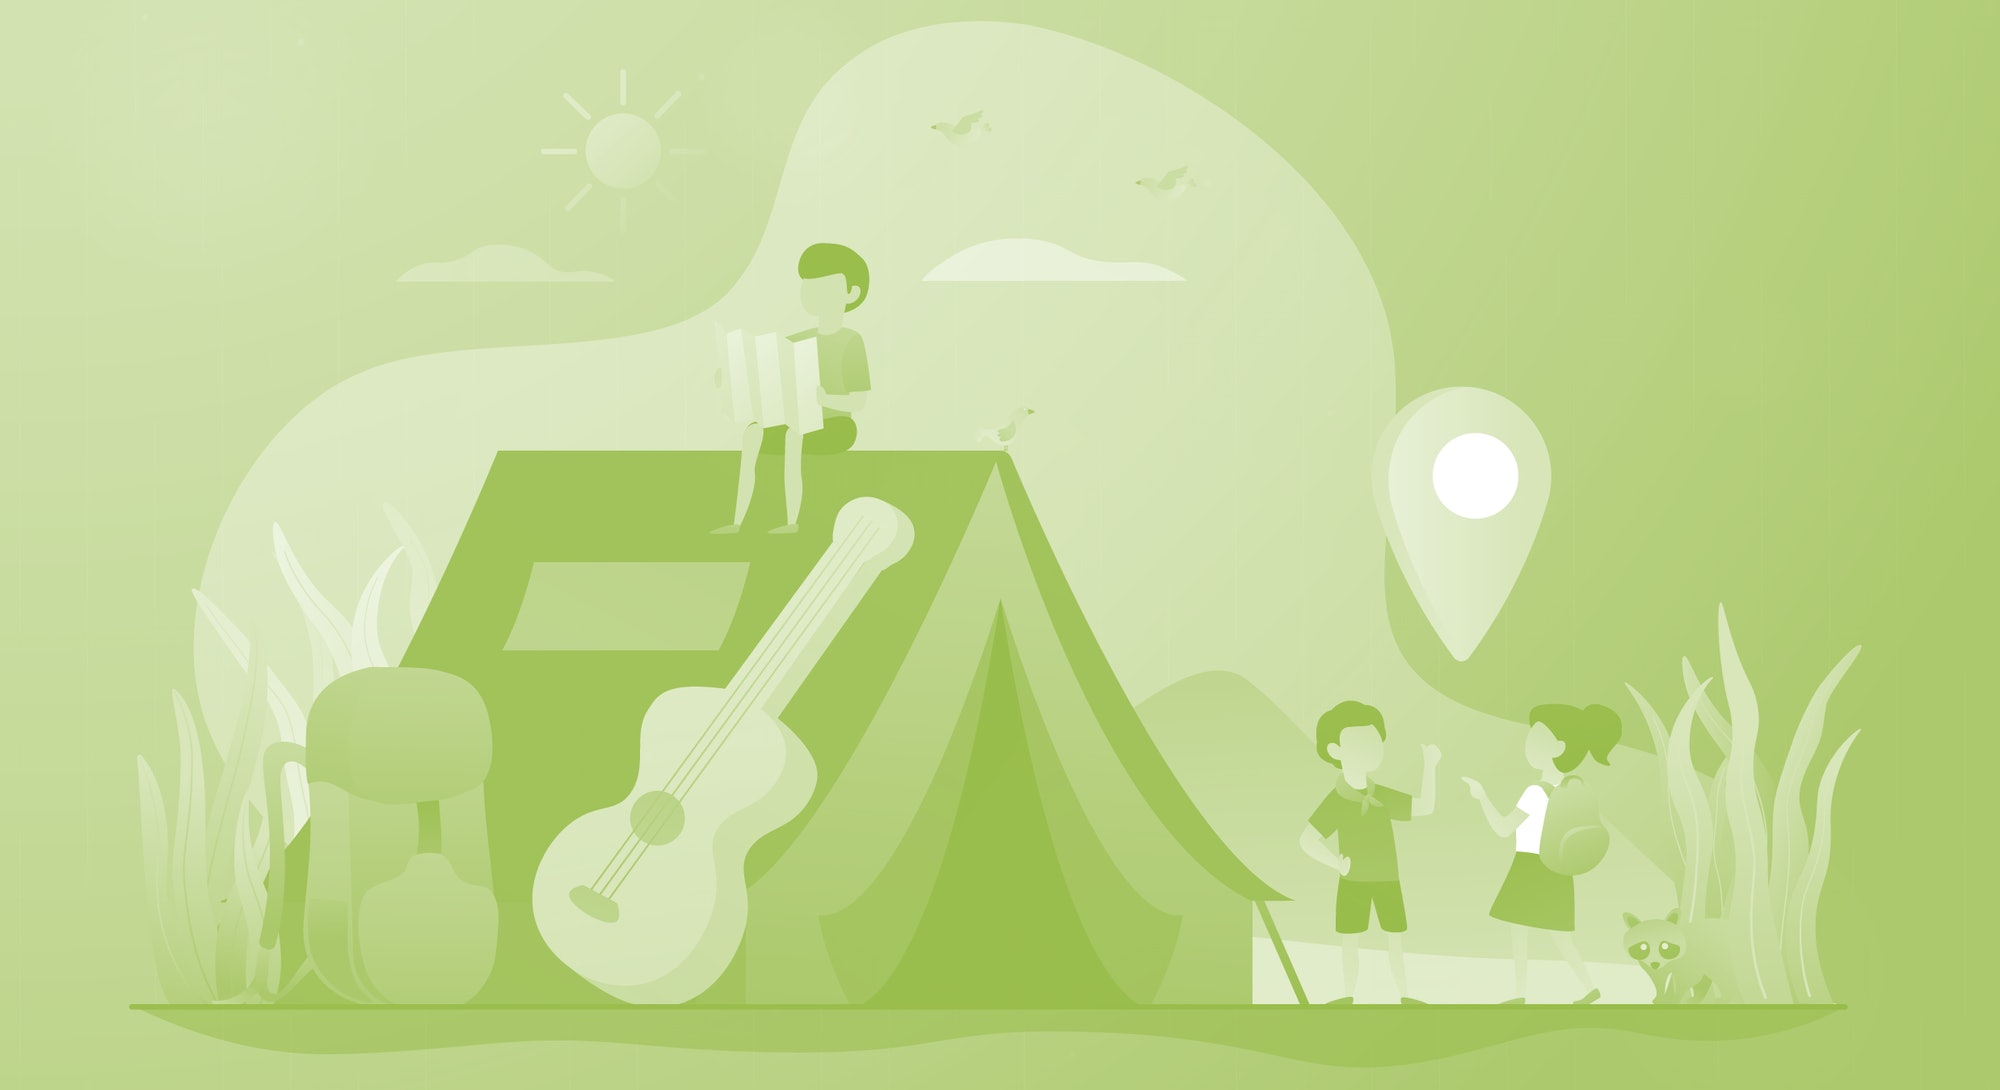 Children camping holiday. Landscape tourism, outdoor recreation, hiking. Tent on nature. Summer camp, sleepaway camp, kids vacation time concept. Vector isolated concept creative illustration